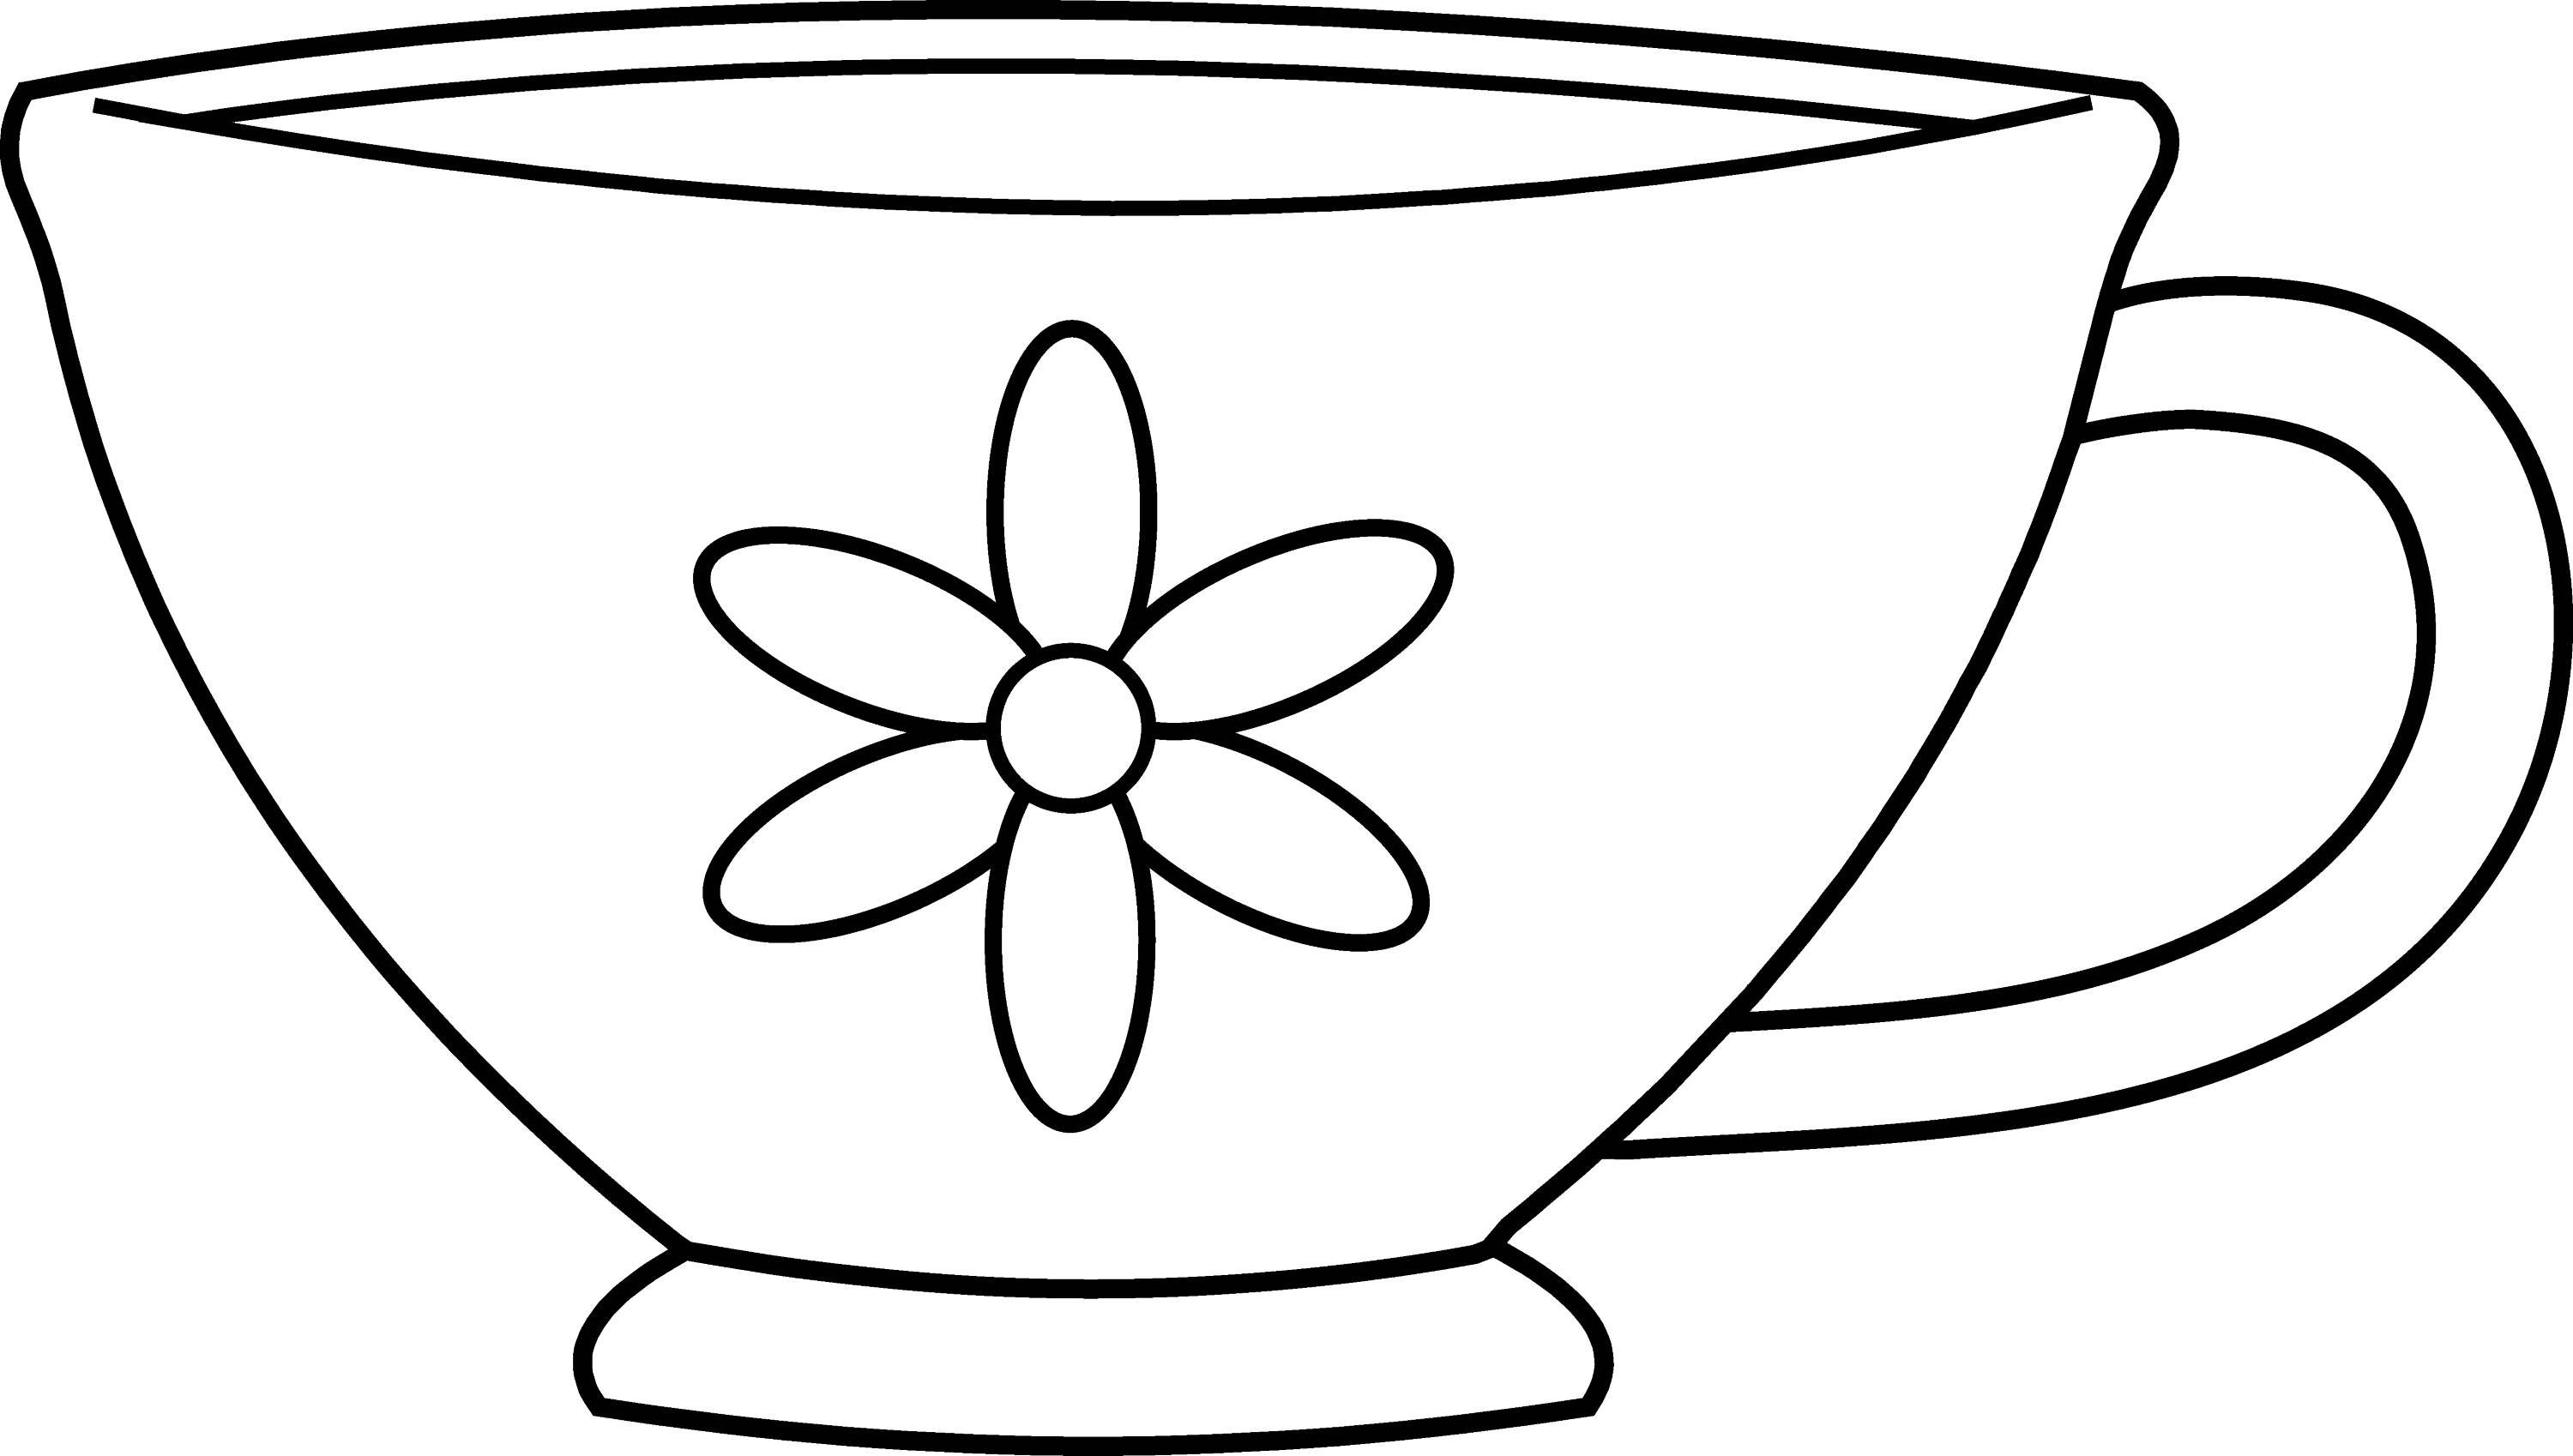 Cute Teacup Coloring Page - Free Clip Art